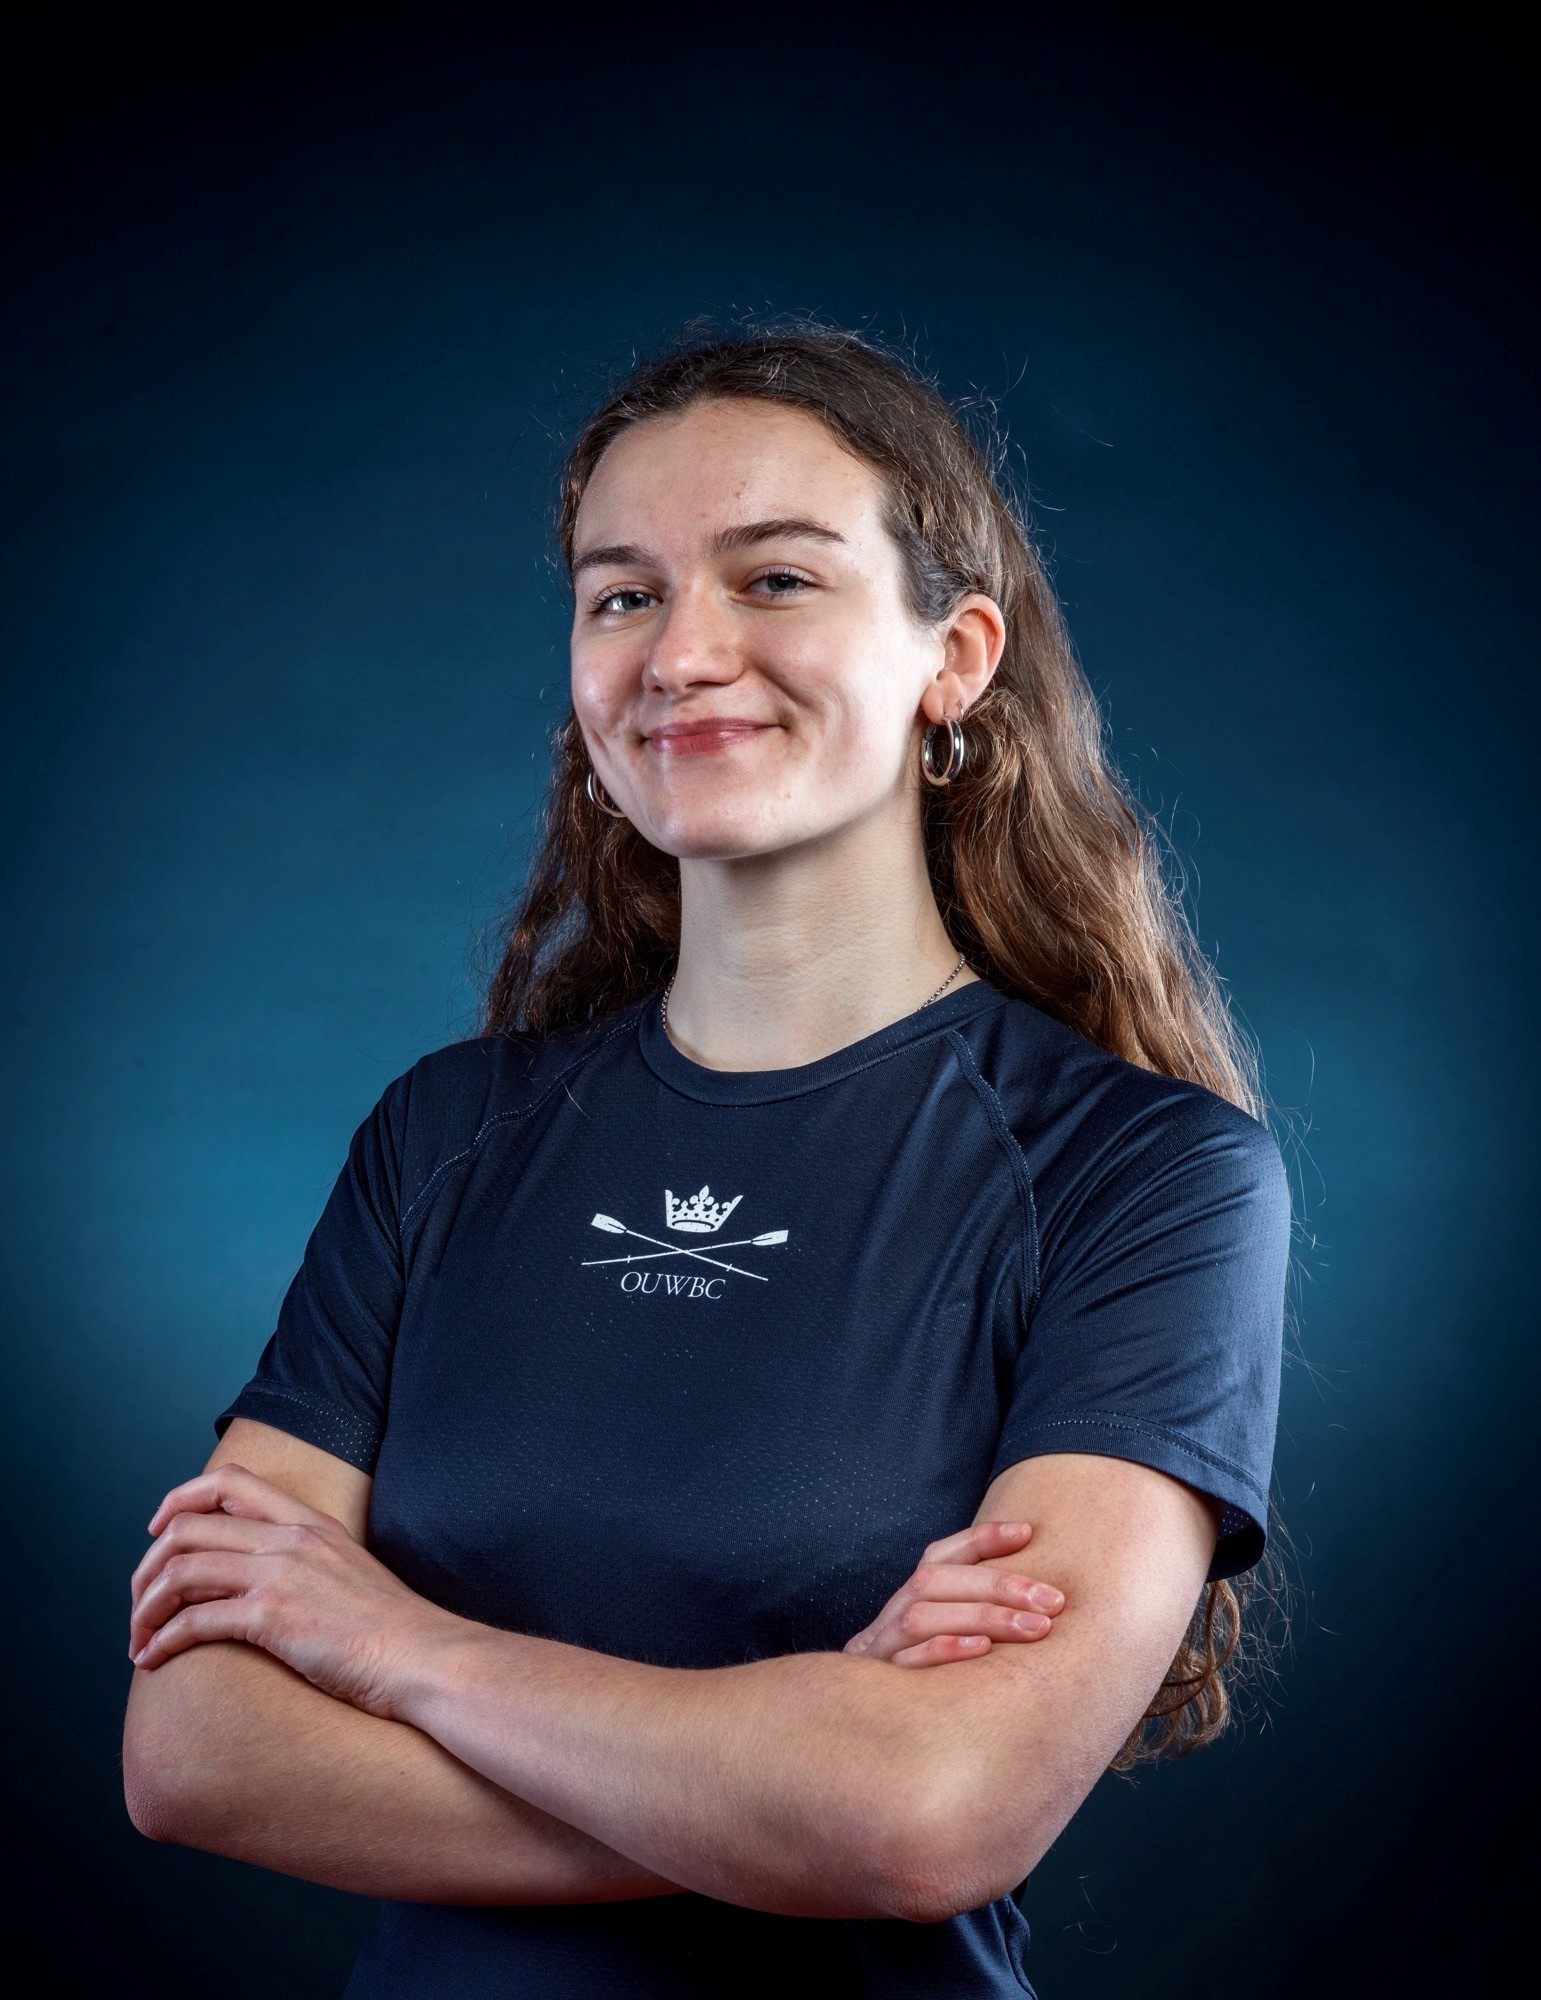 Martha Birtles in her University of Oxford rowing kit